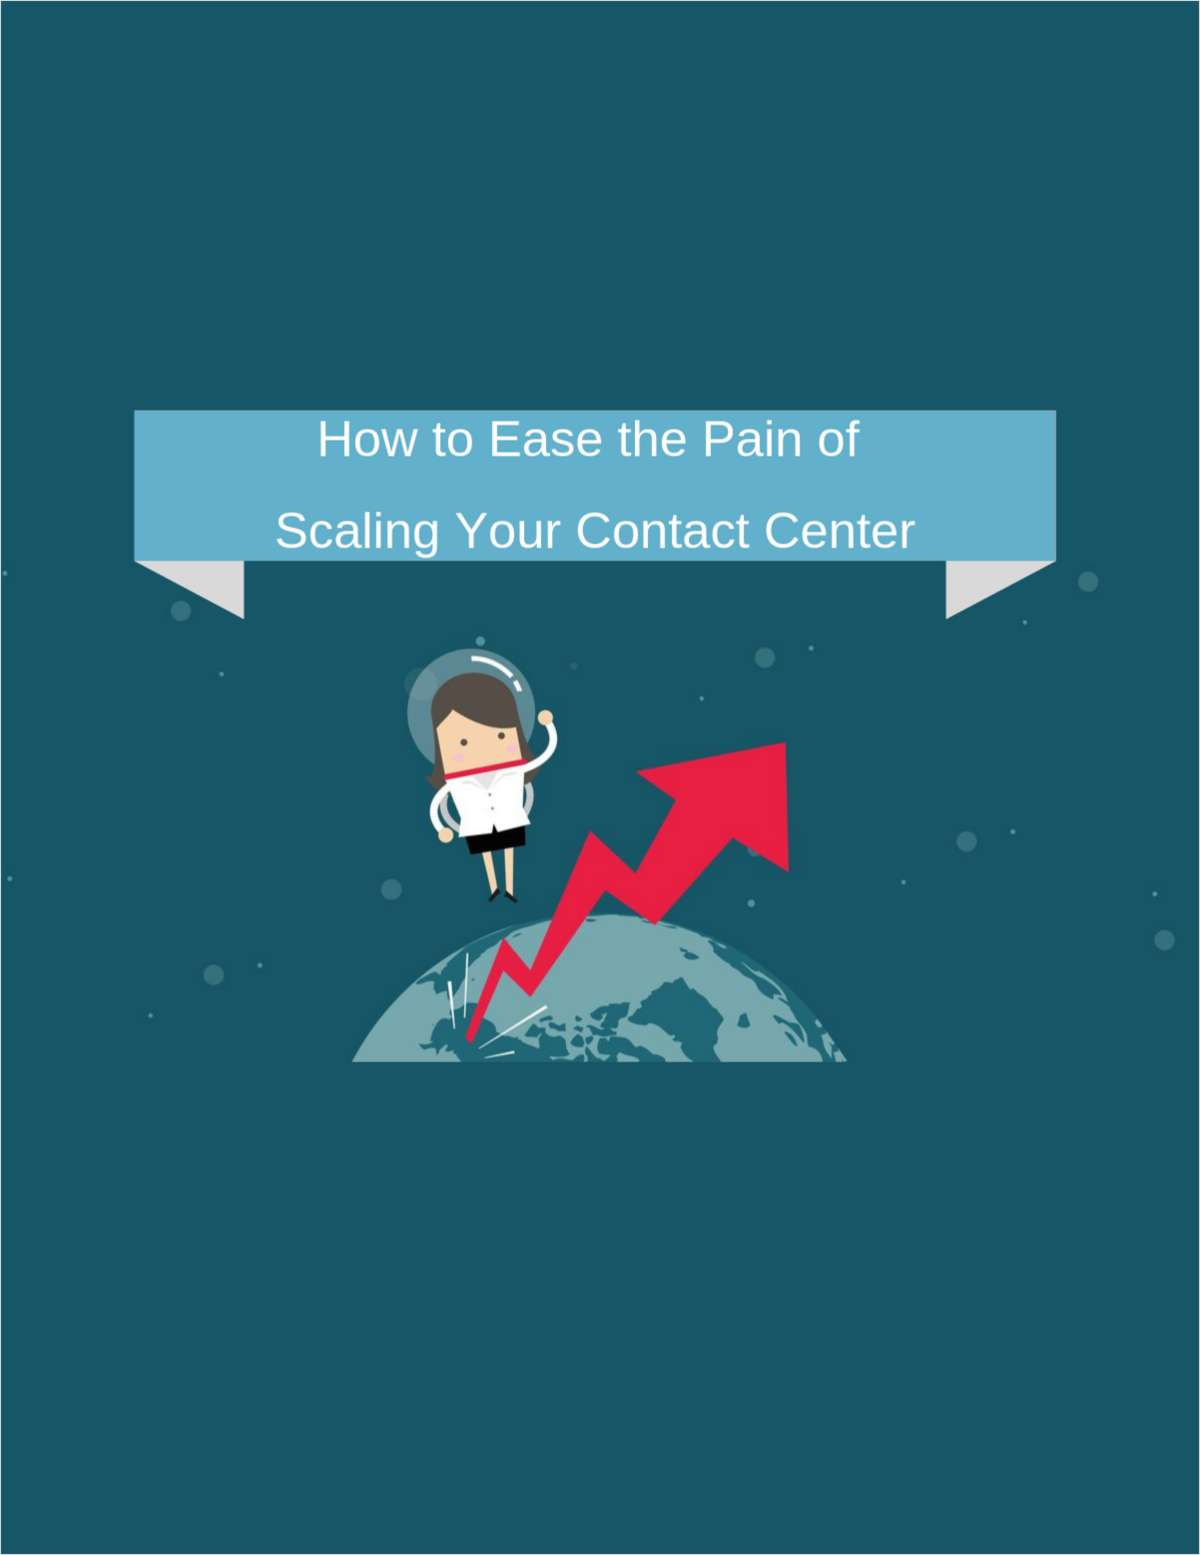 How to Ease the Pain of Scaling Your Contact Center